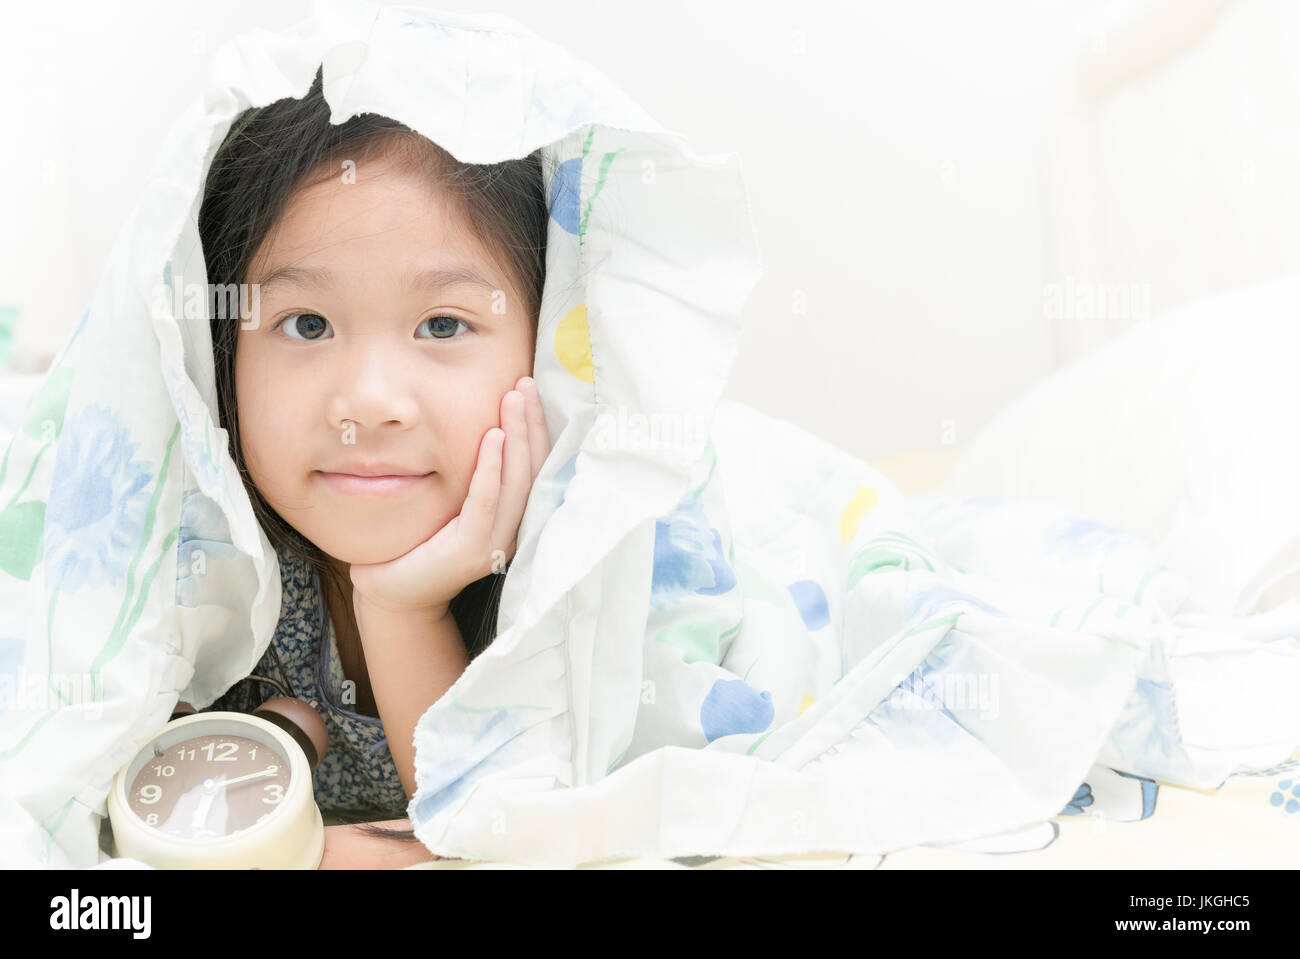 Adorable little cute girl awaked up in her bed with alarm clock - Stock Image